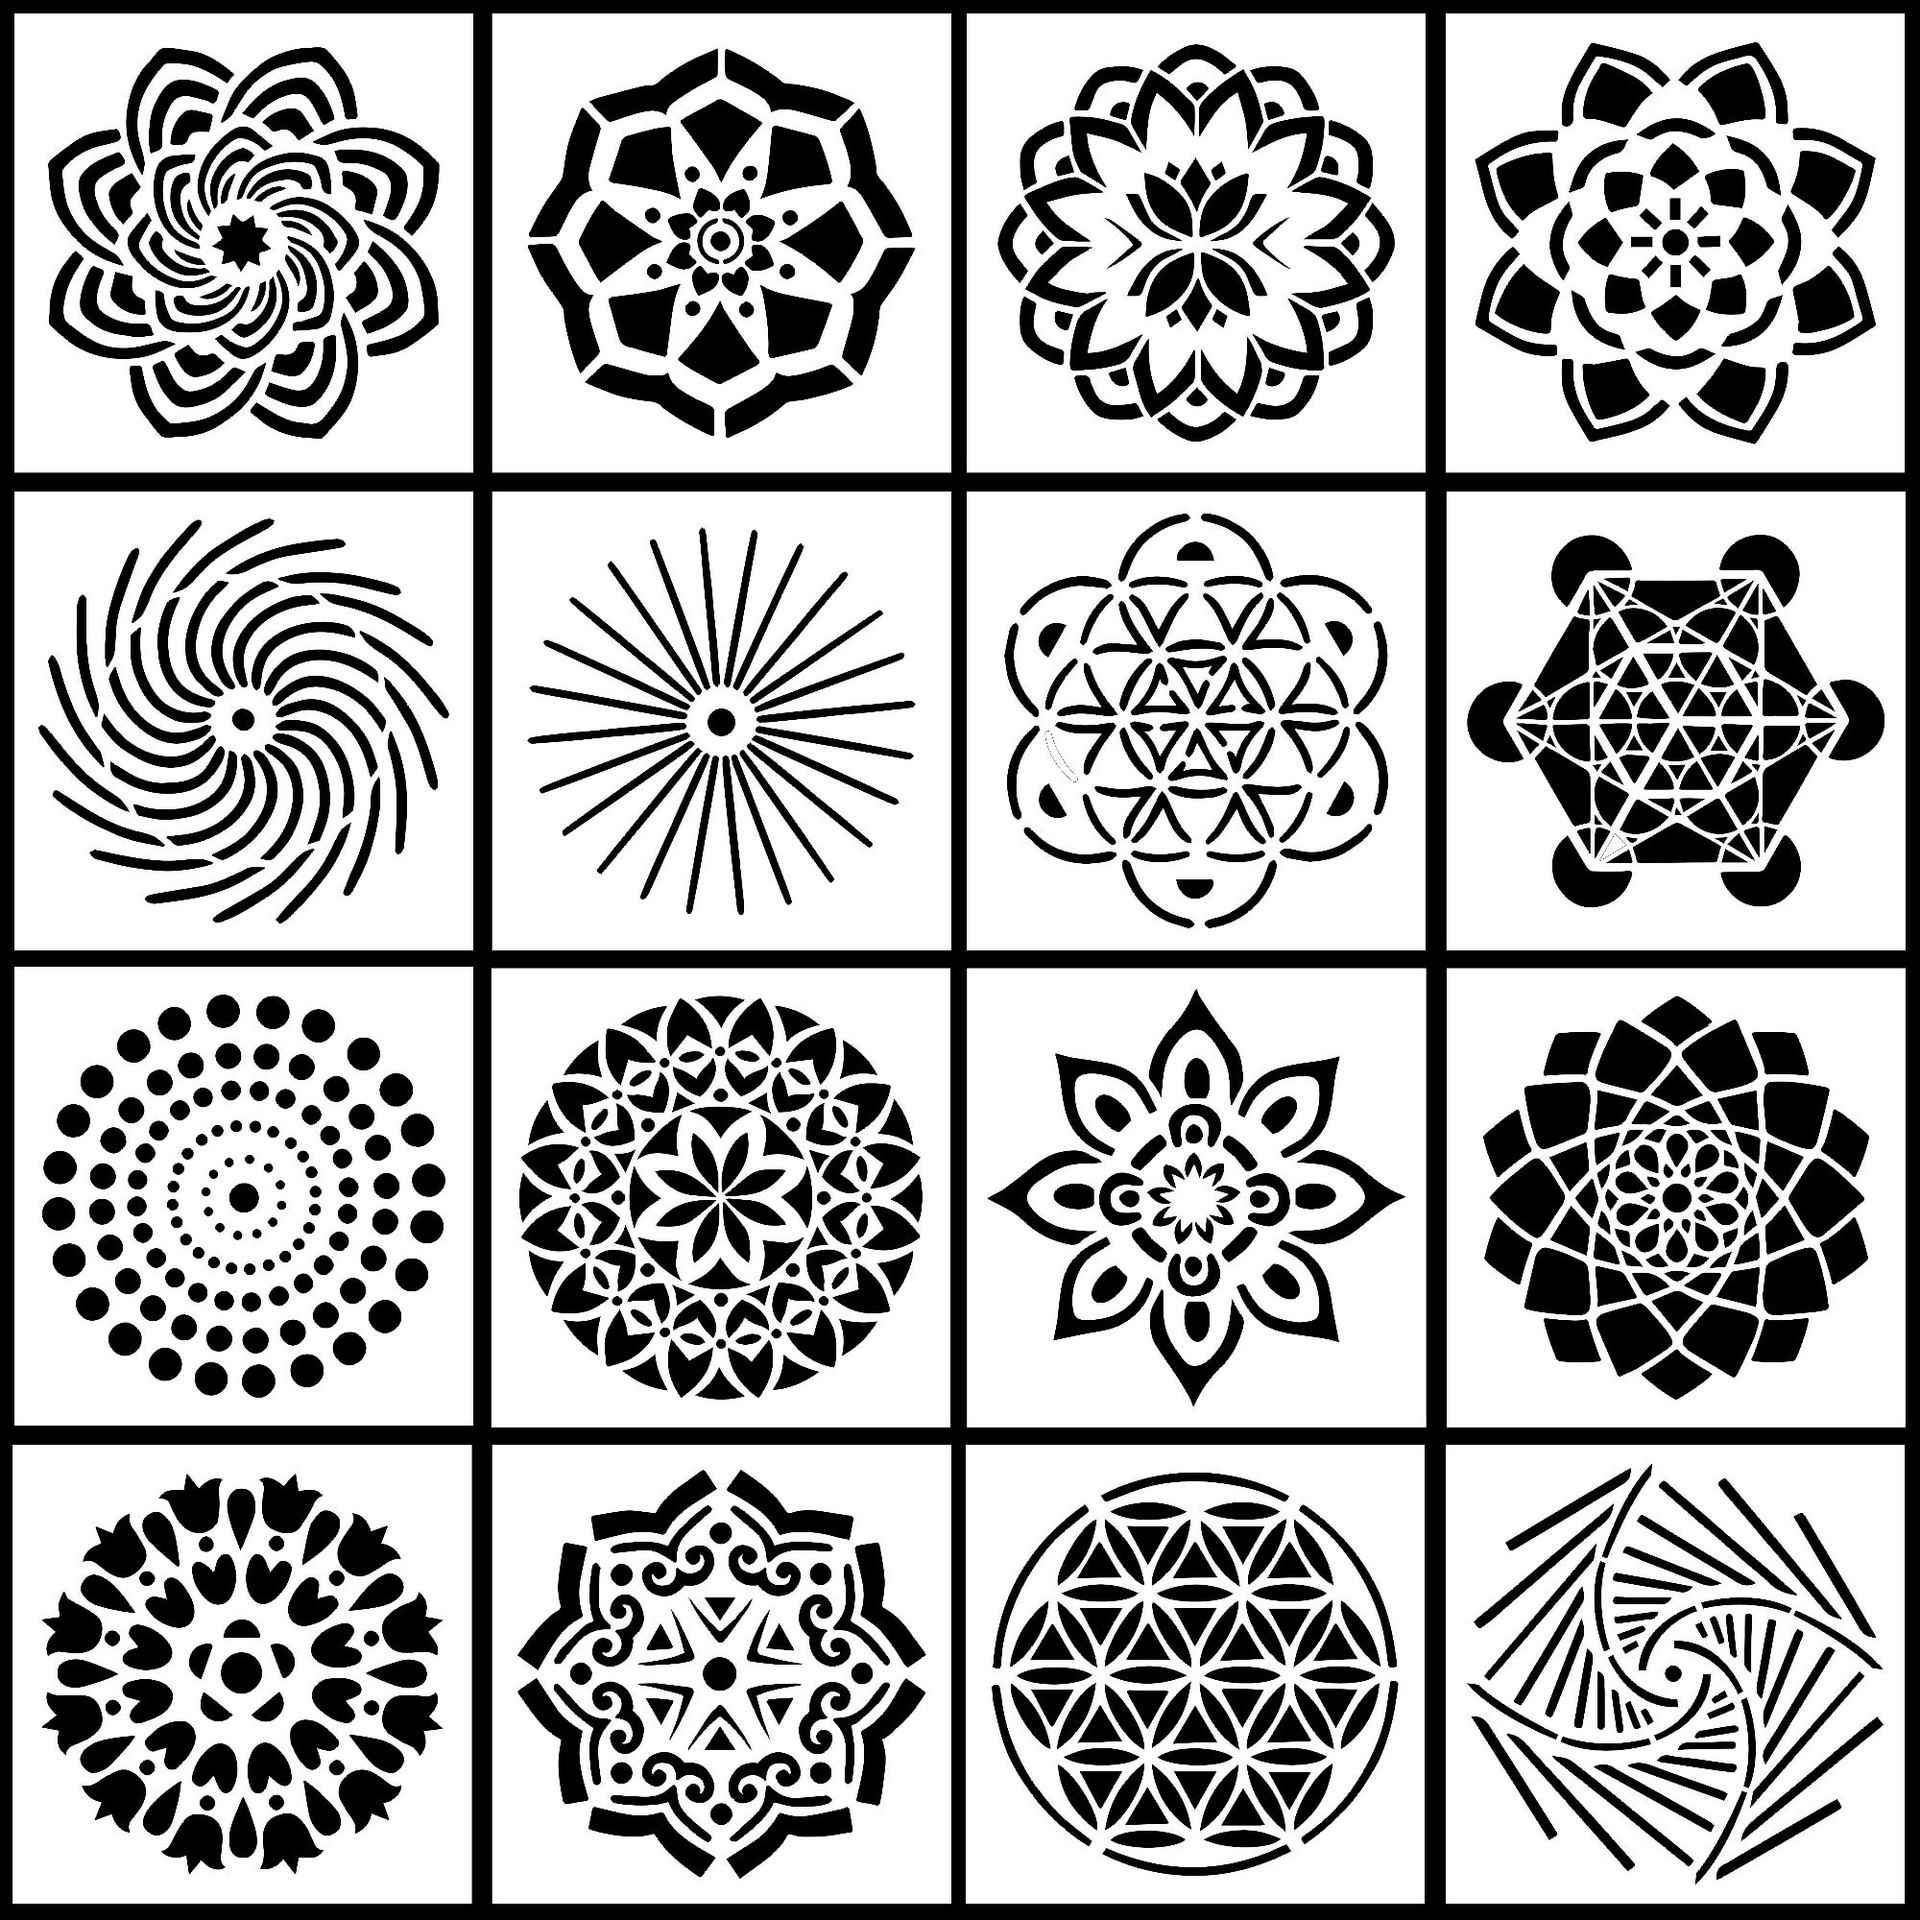 New 16Pcs/Set 13cm Mandala Geometry DIY Layering Stencils Painting Scrapbook Coloring Embossing Album Decorative Template